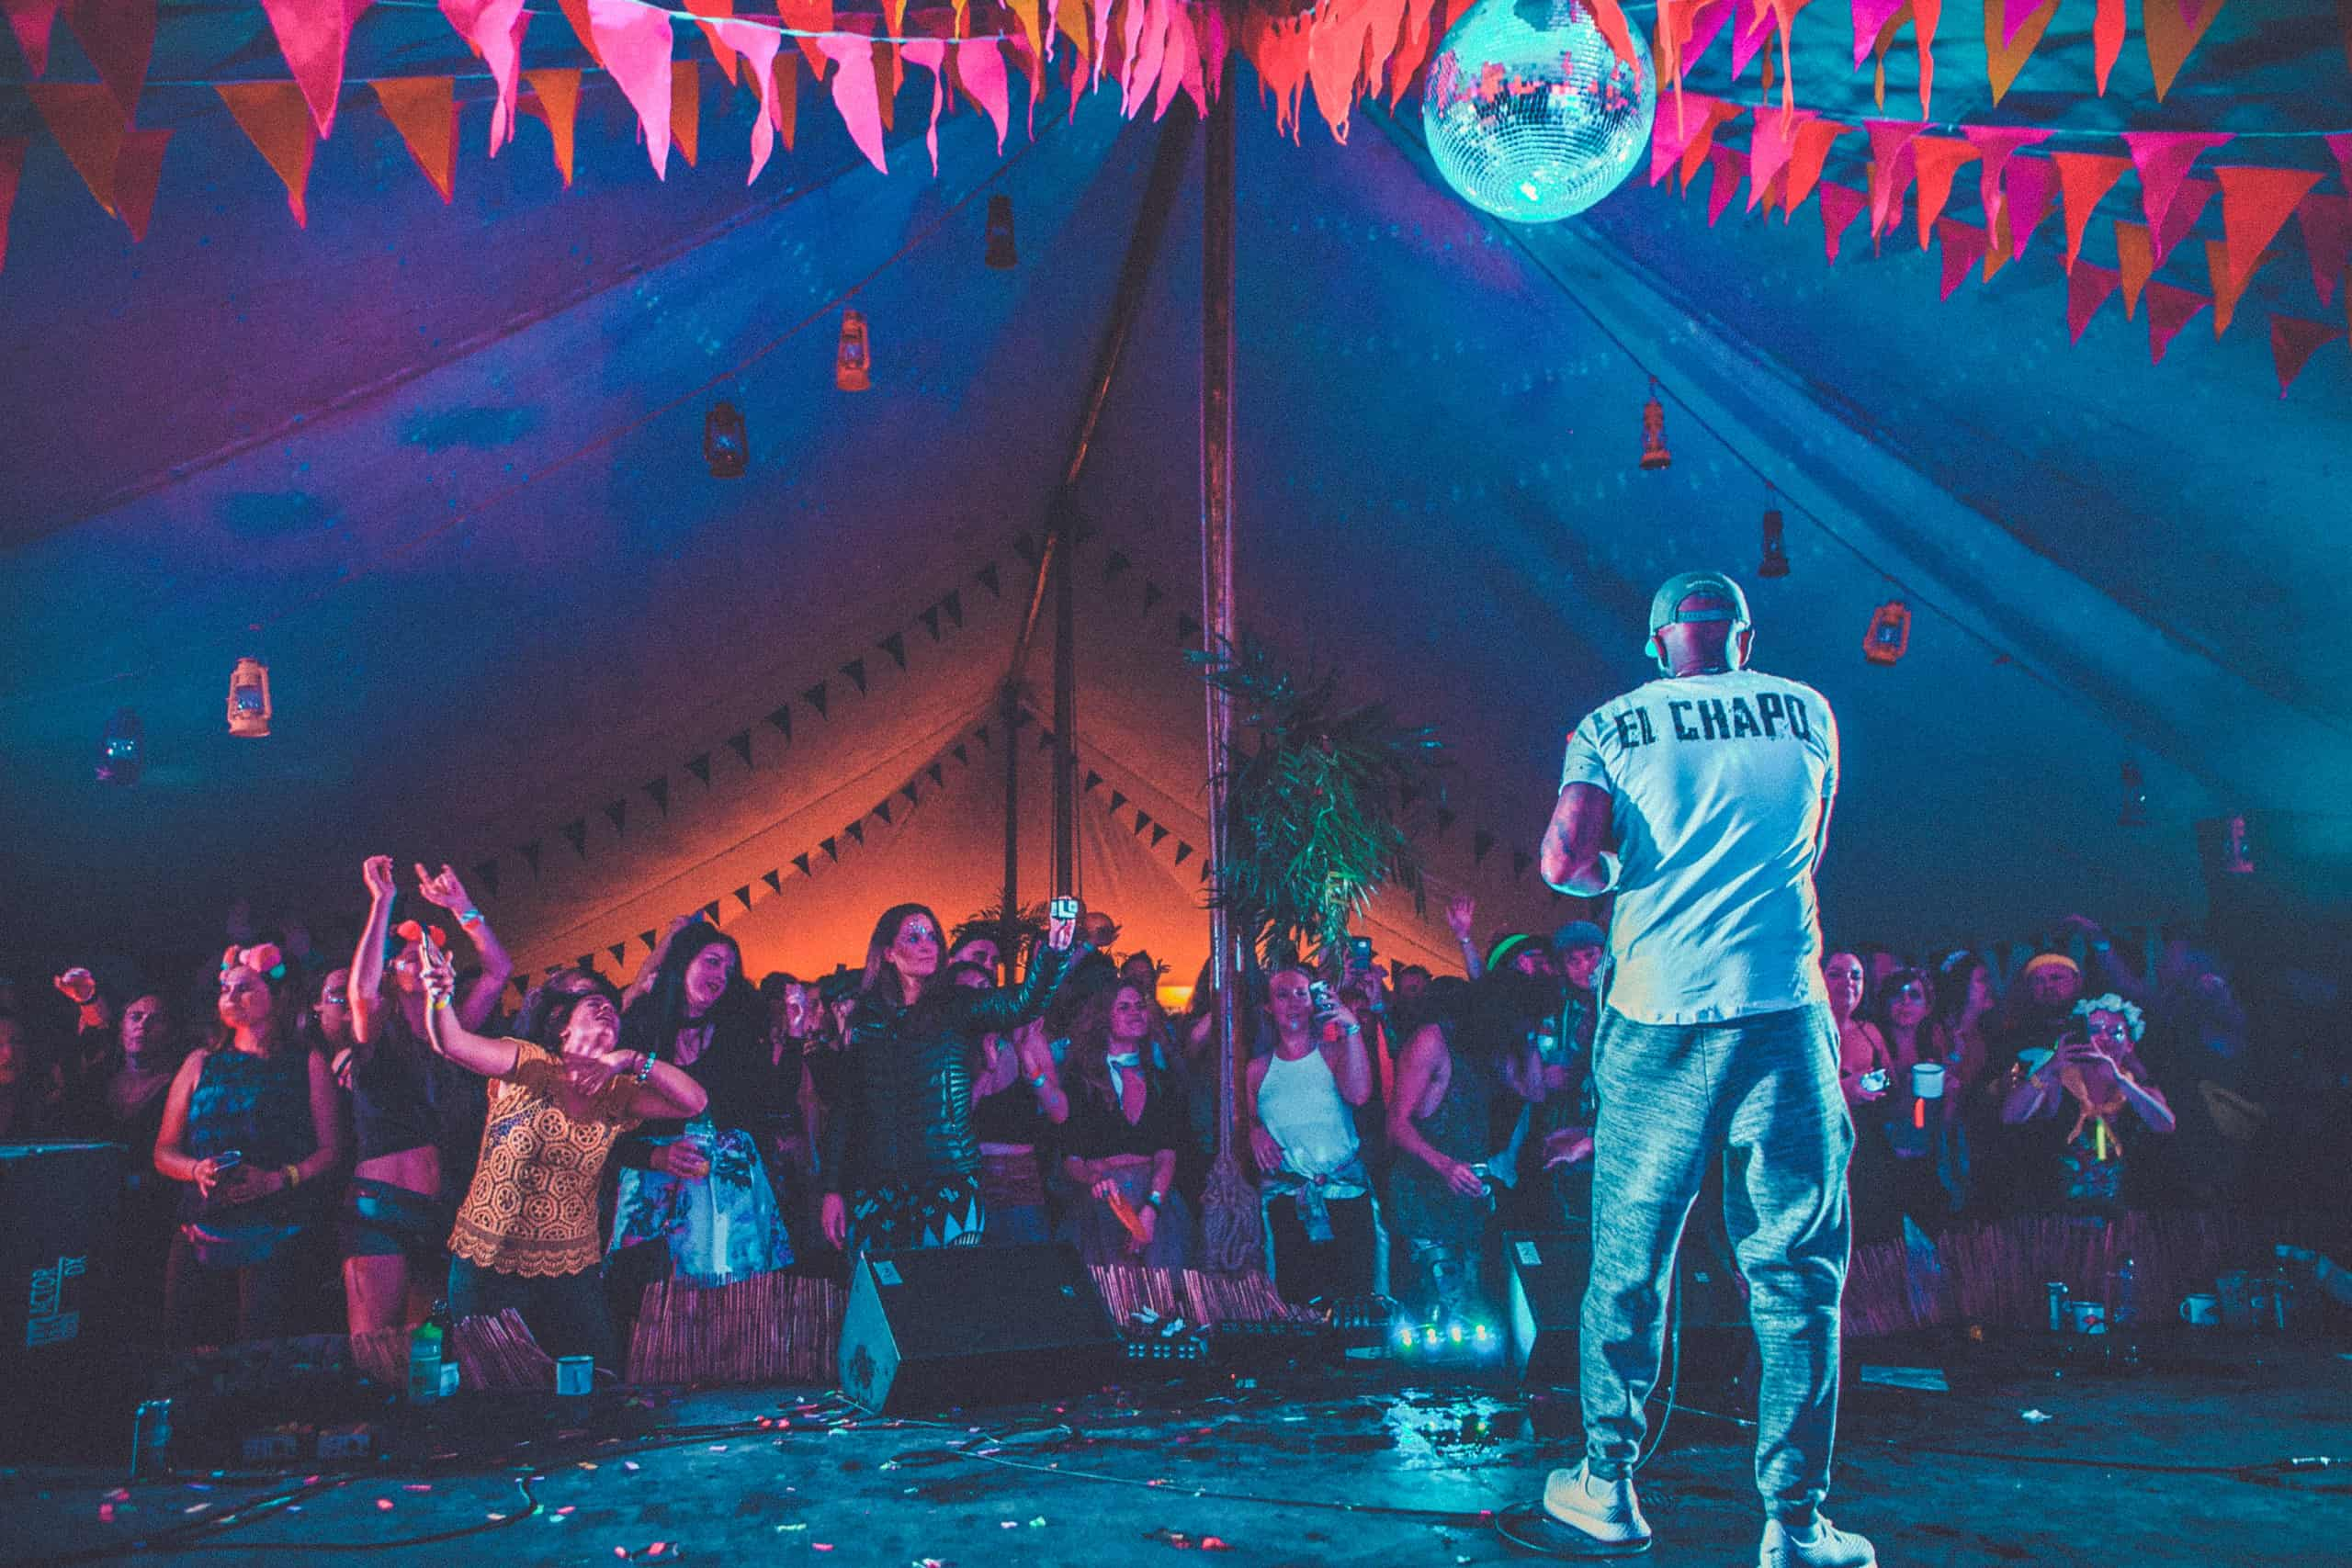 DJ Luck and MC Neat on stage at Camp Wildfire. A summer weekend break in a forest near London and Kent. An outdoor woodland retreat featuring adventure activities, live music, DJs, parties and camping. Half summer adventure activity camp, half music festival, for adults only.